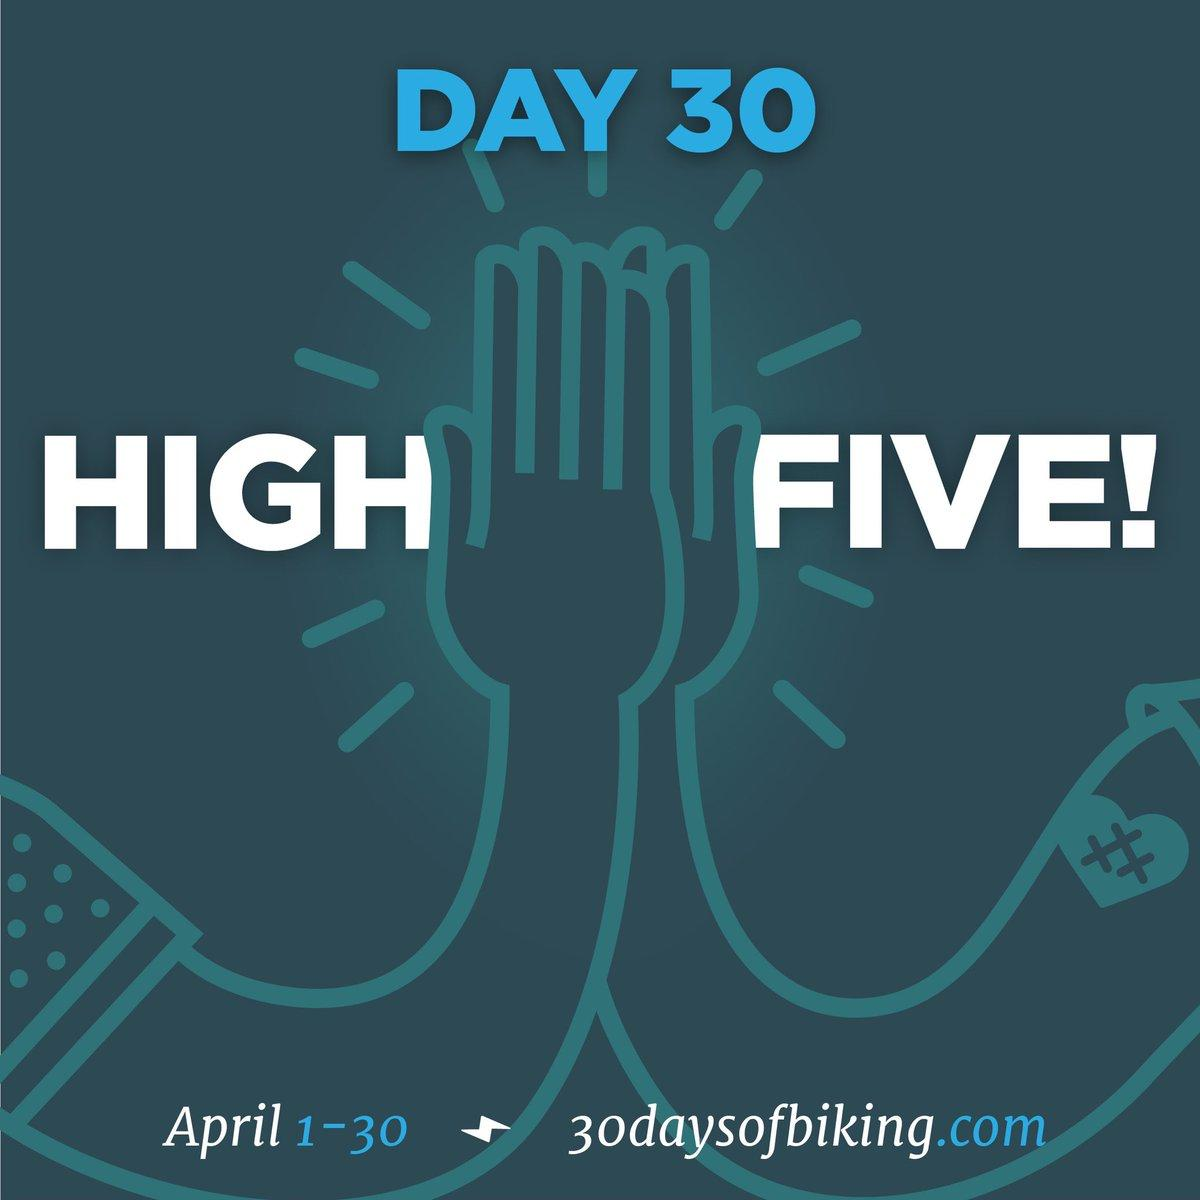 Day 30 high five